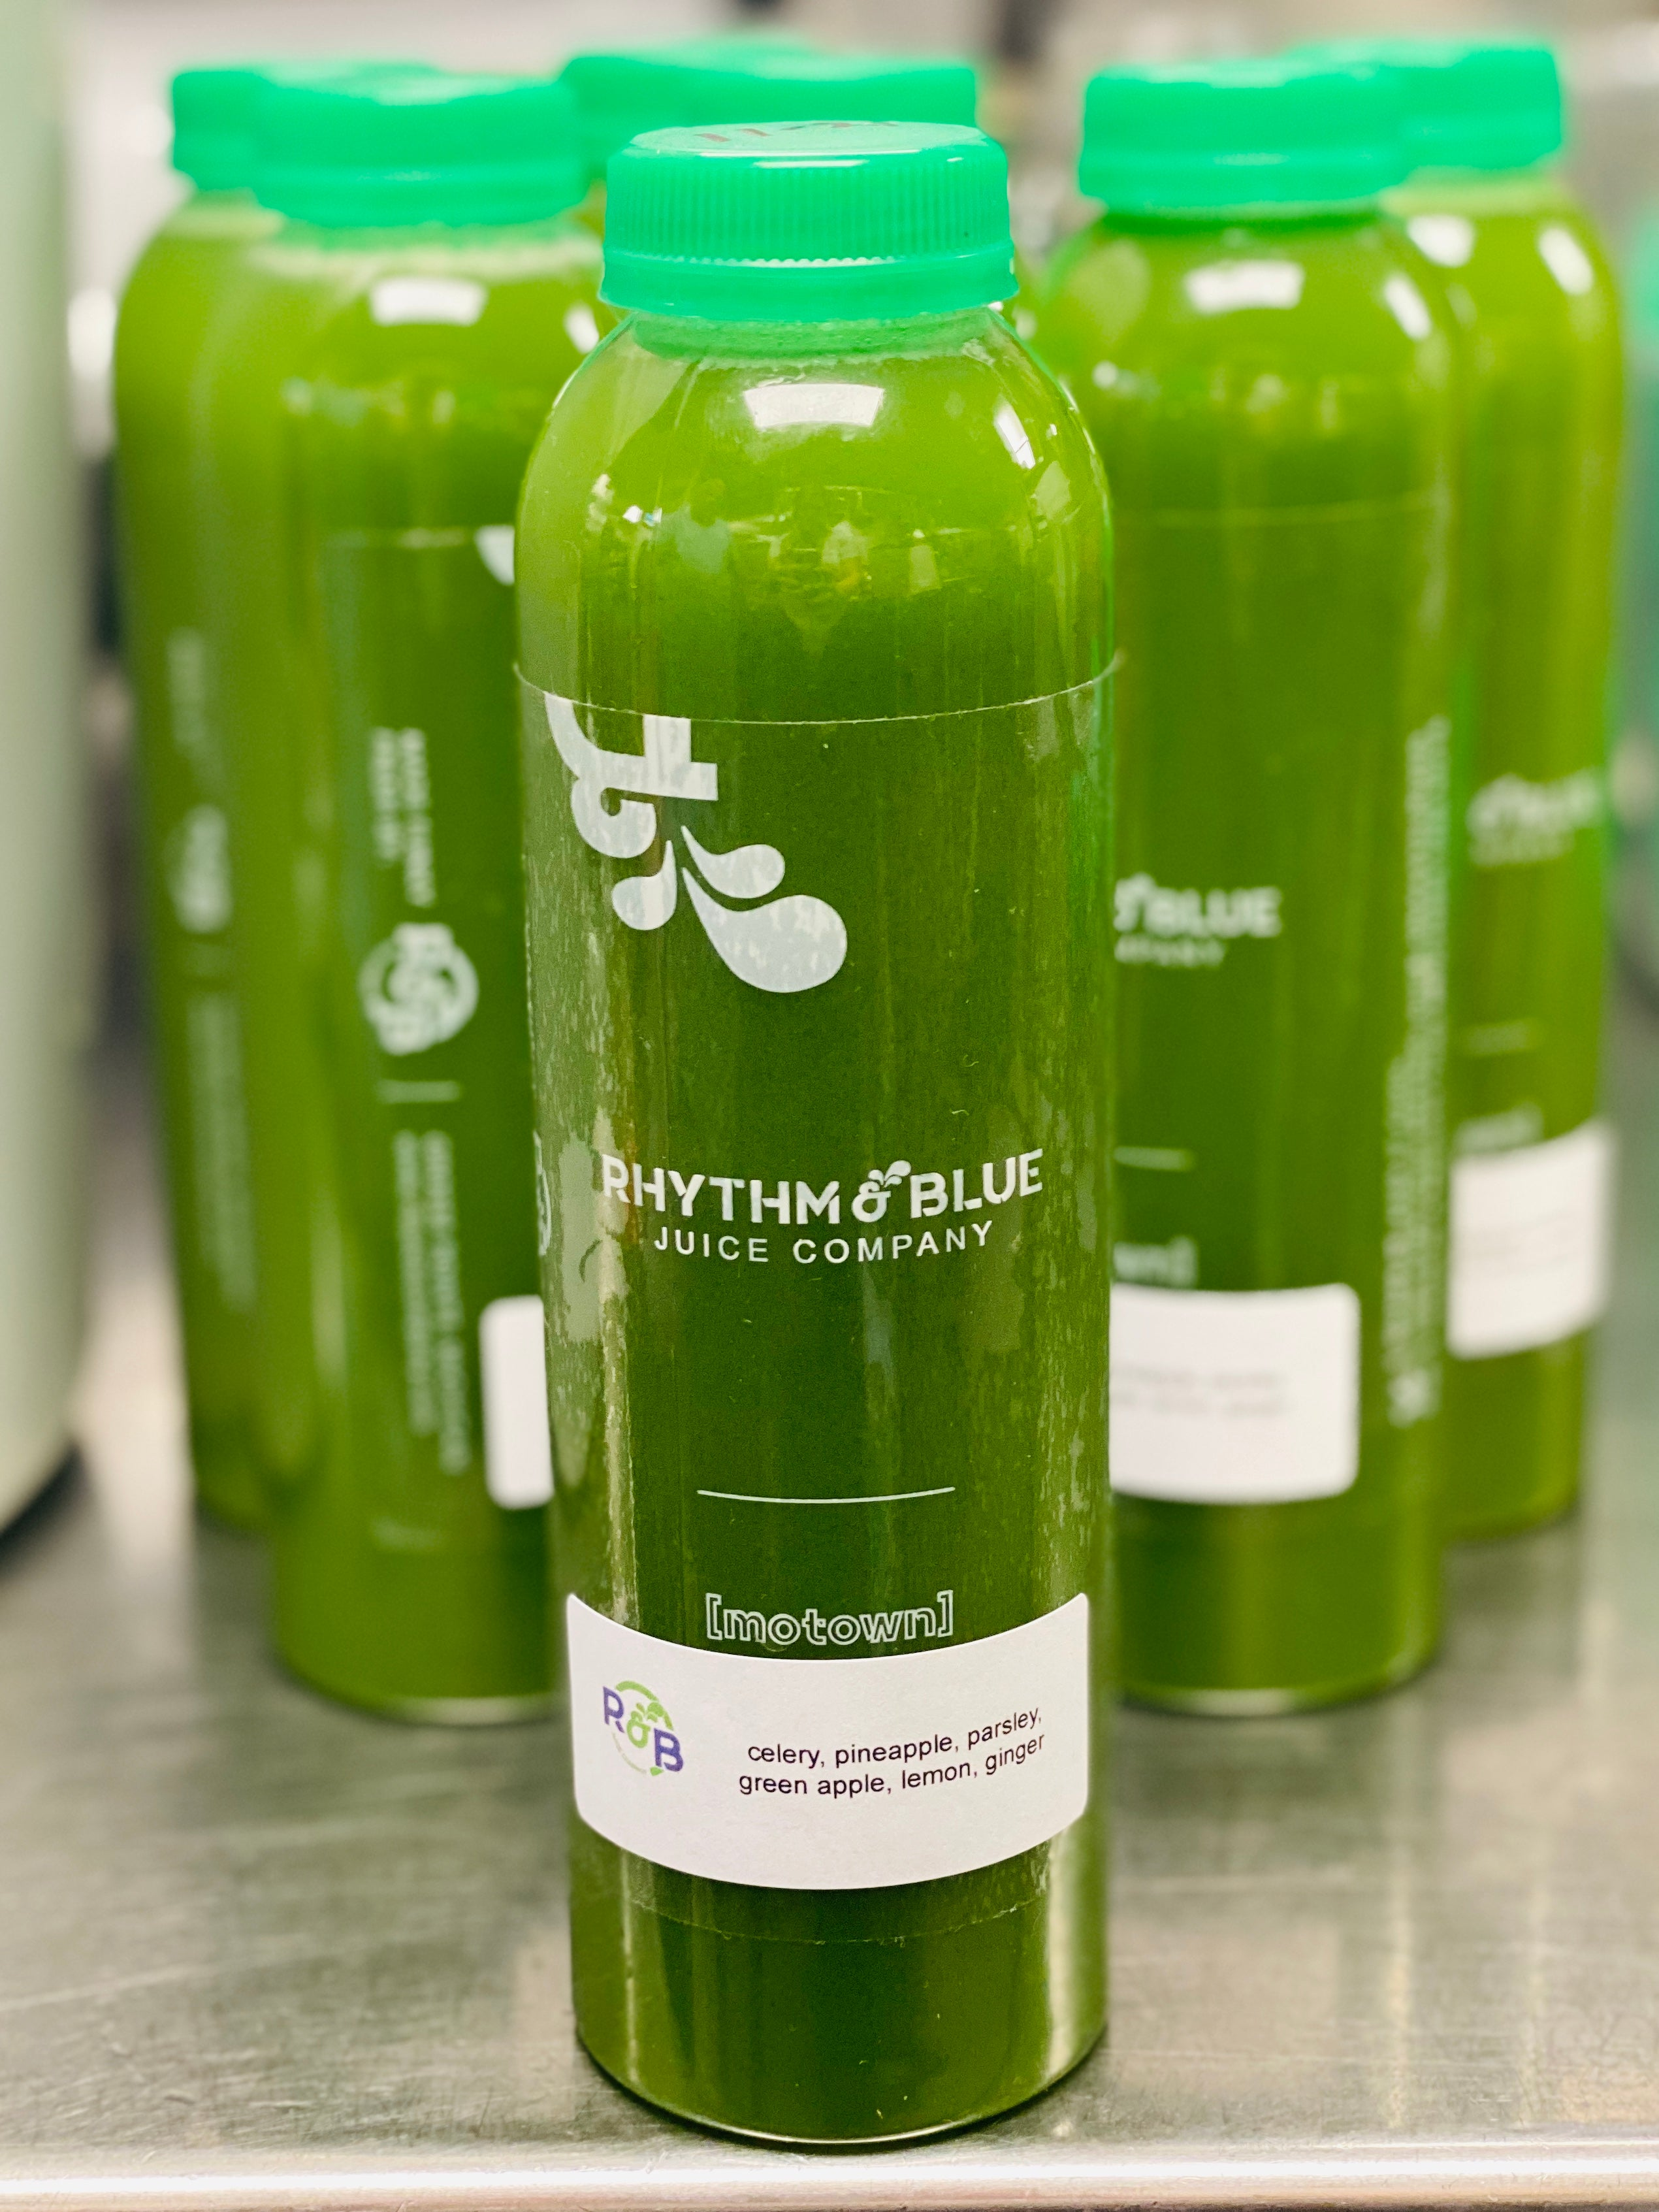 [motown] Cold pressed juice